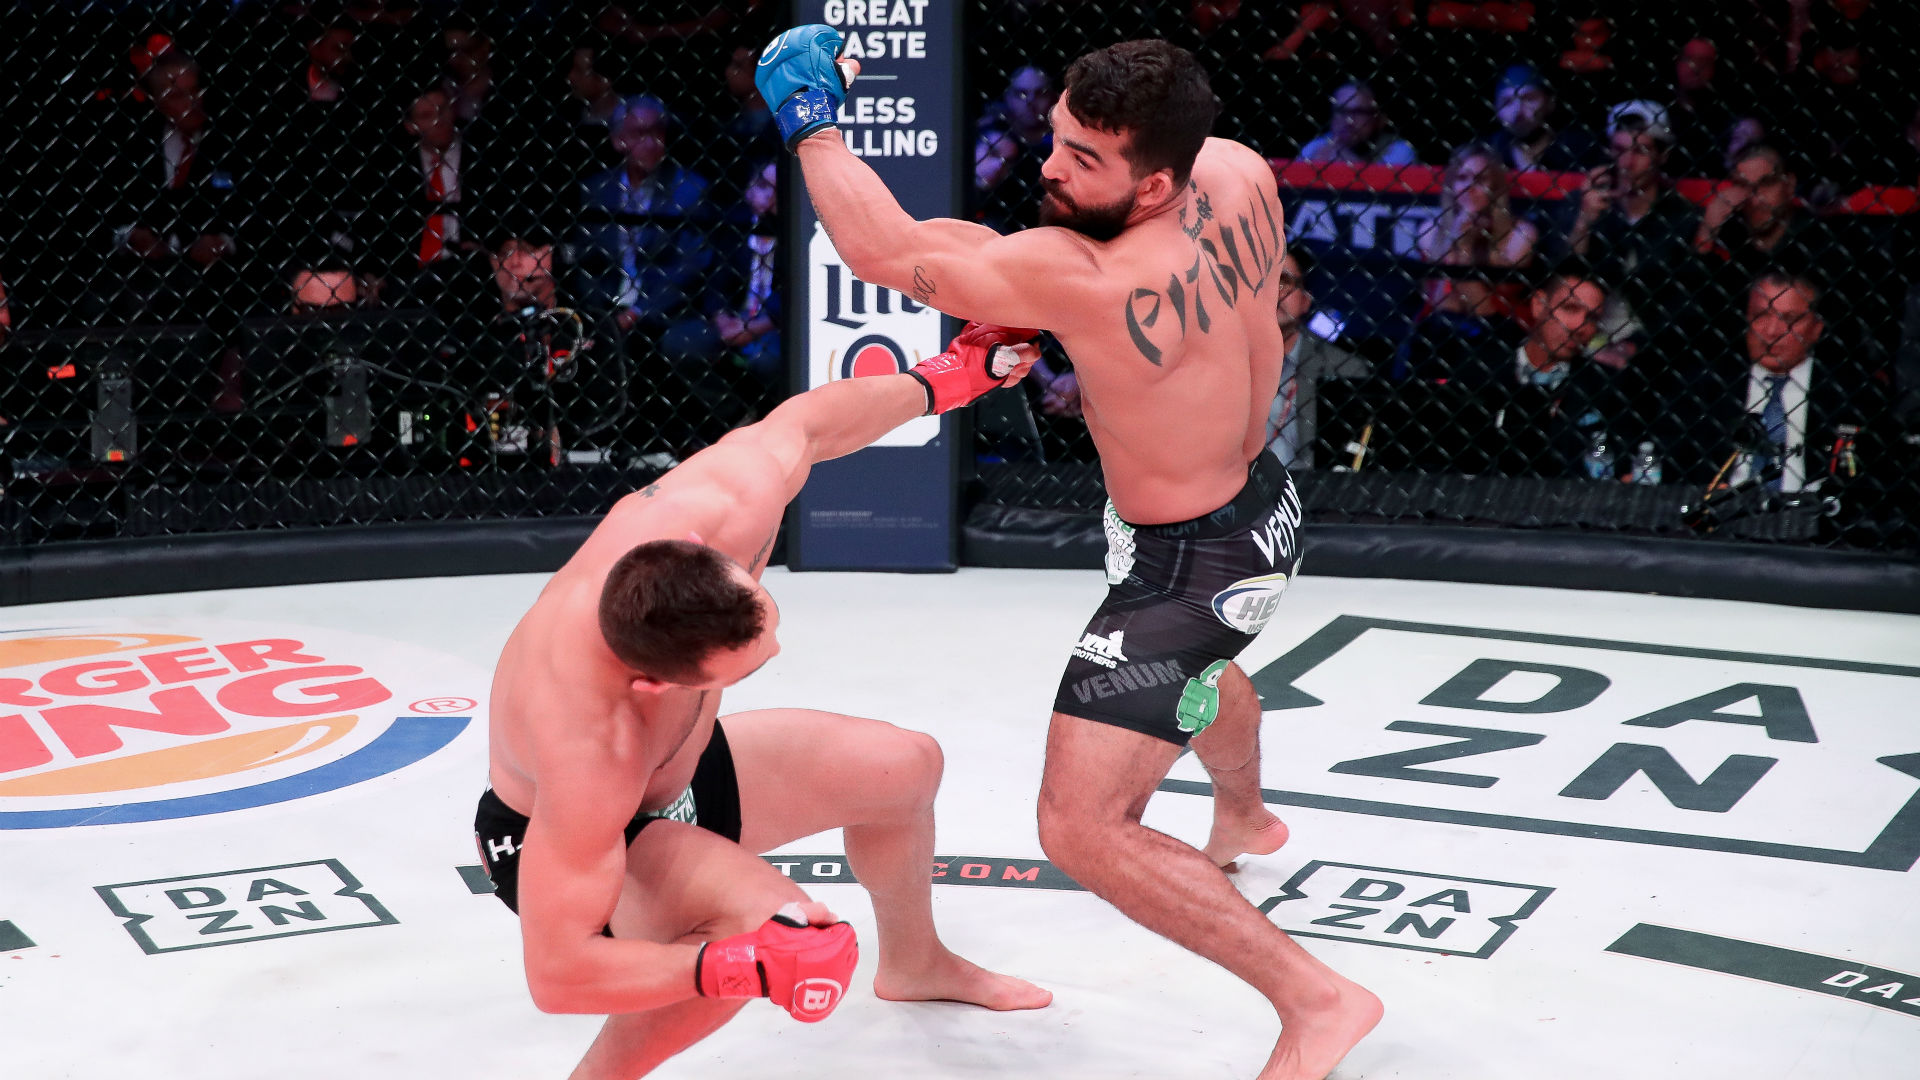 Bellator 221 results: Patricio 'Pitbull' knocks out Michael Chandler in 61  seconds to become double champ | Sporting News